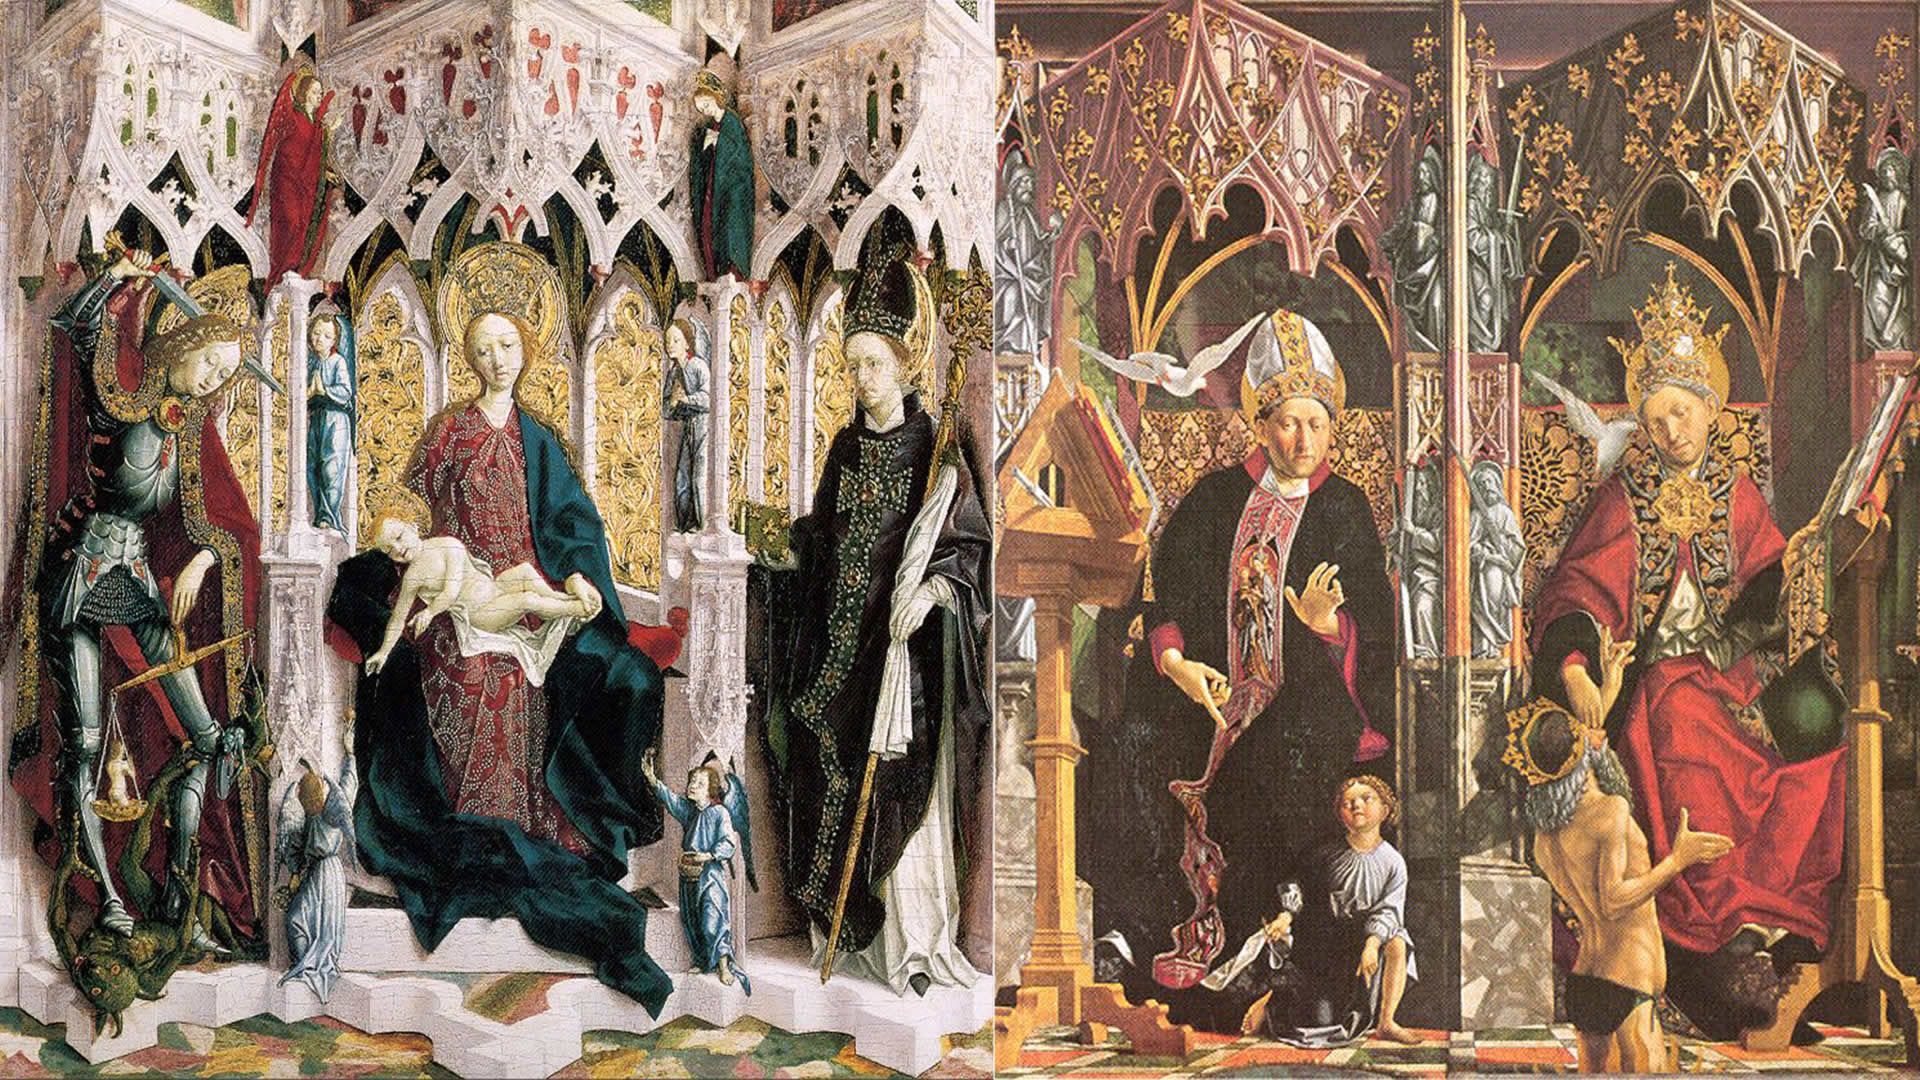 Bishops Priests And Other Religious Figures